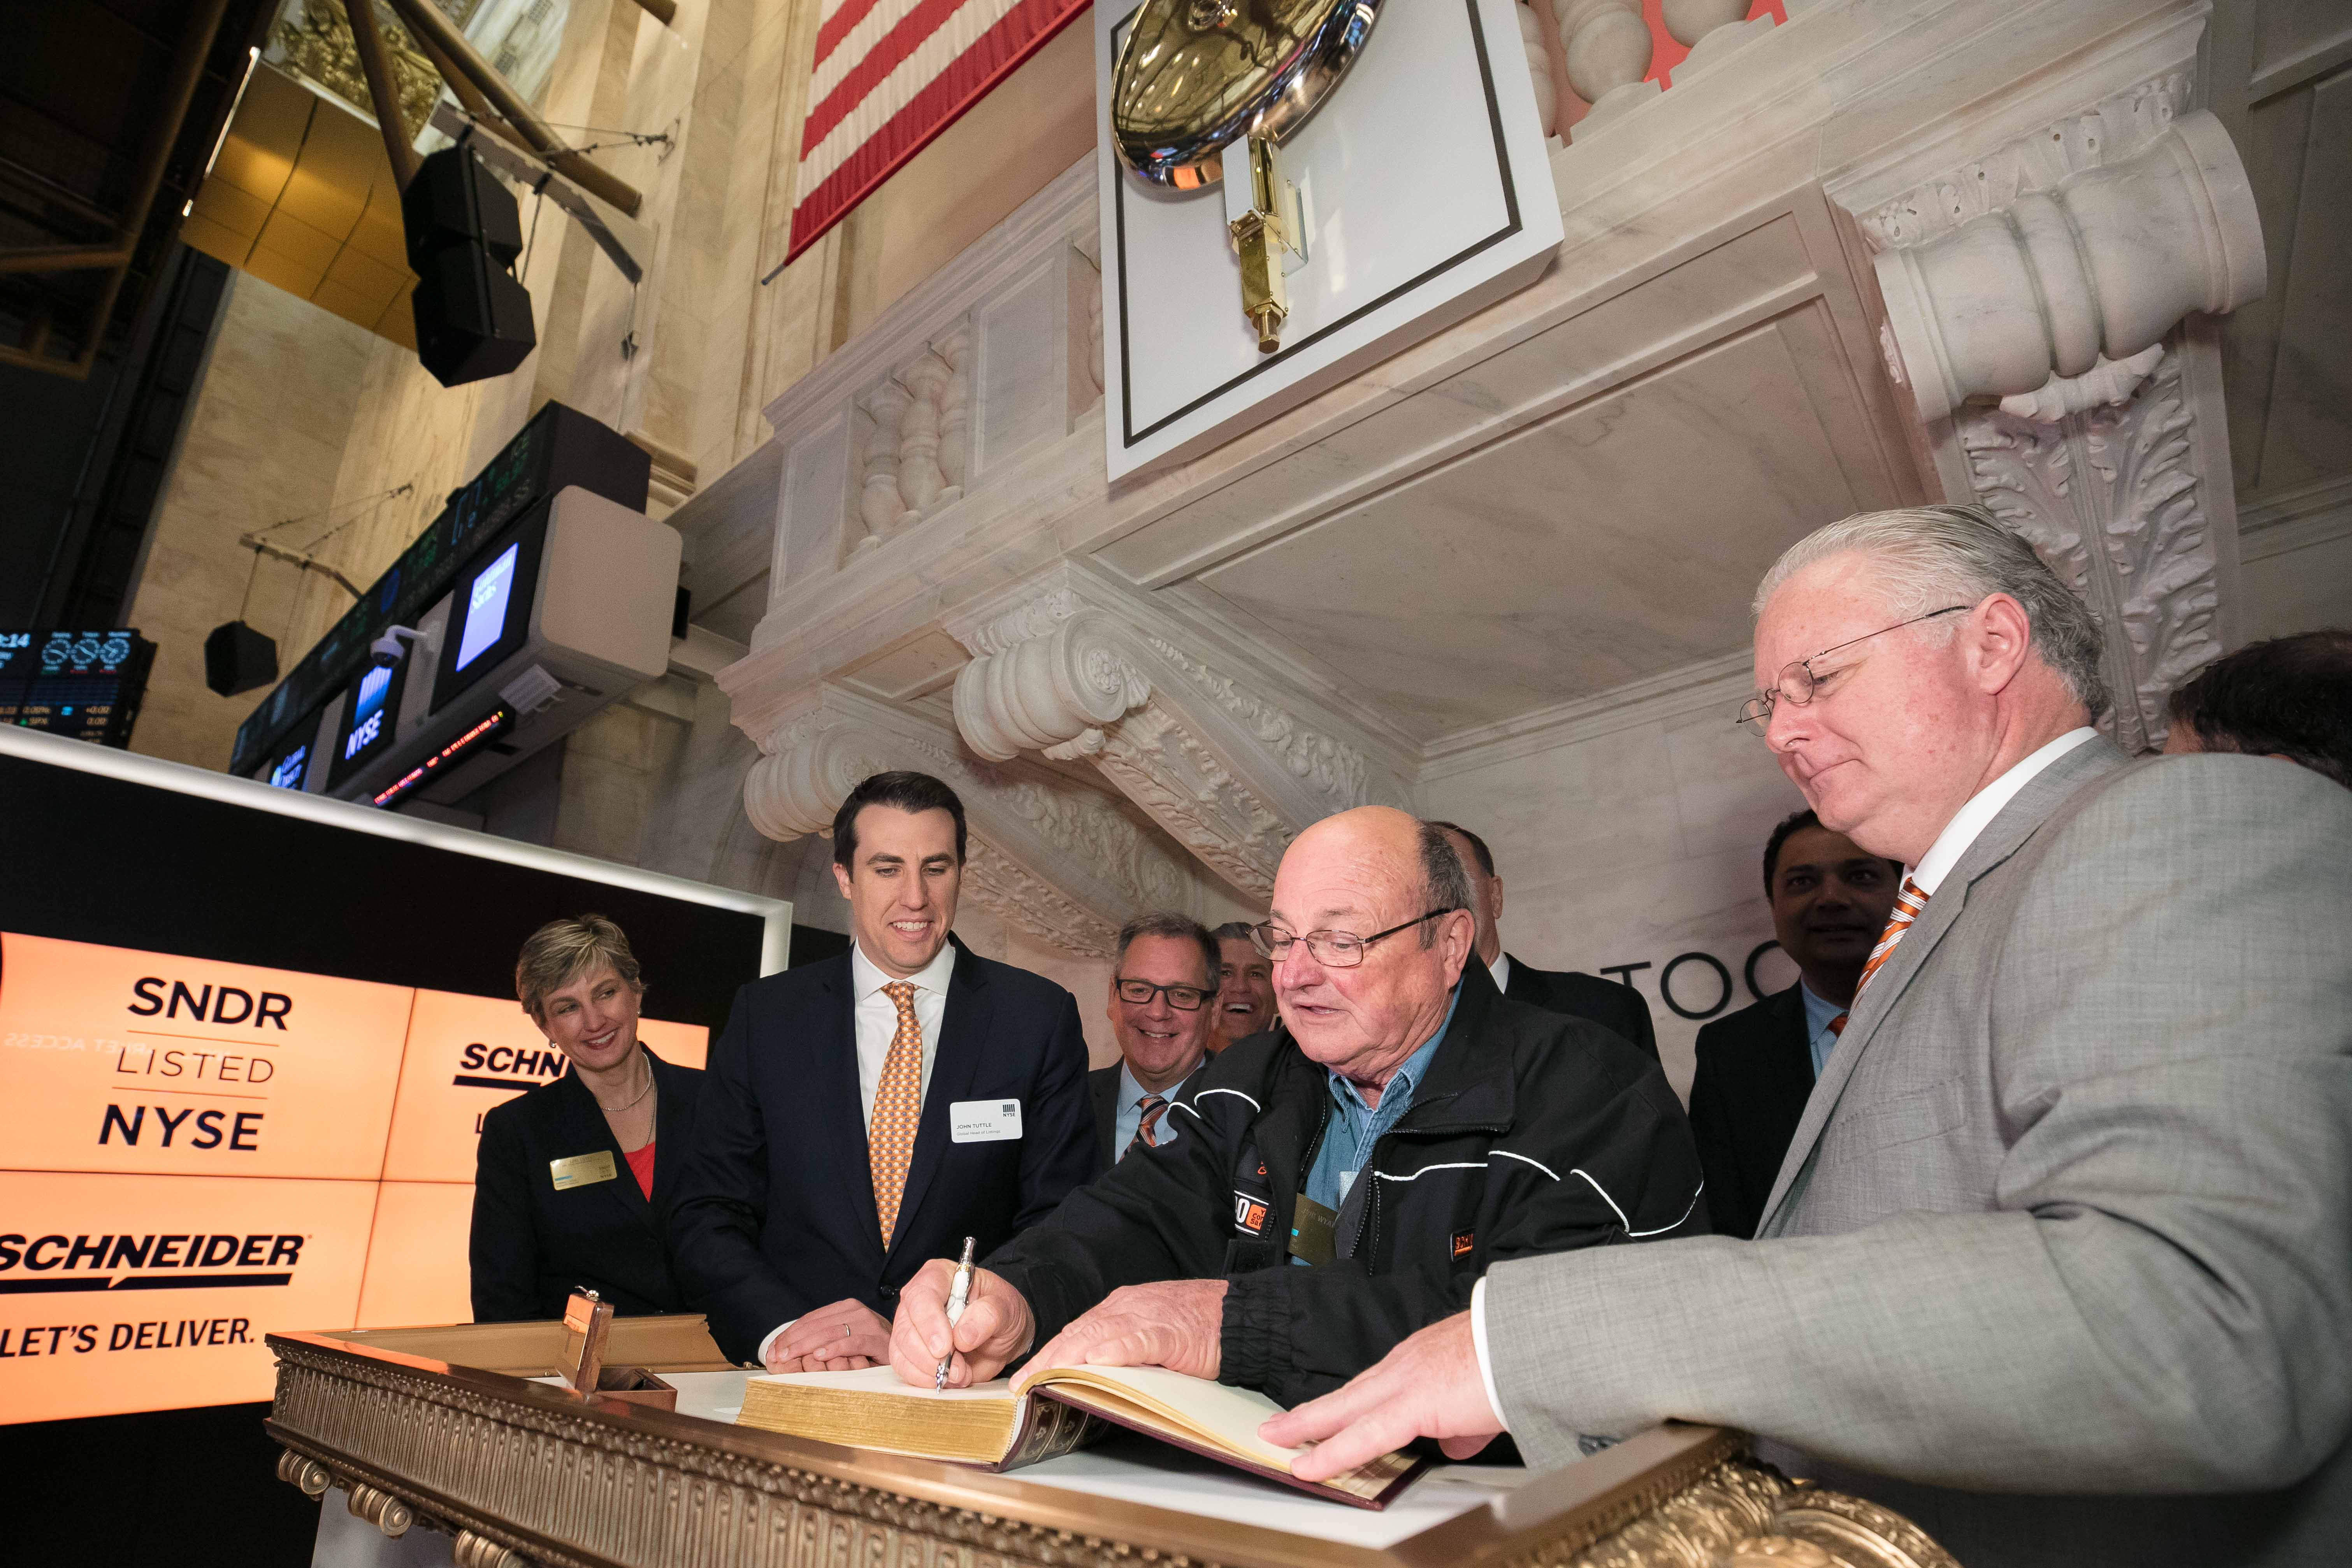 Schneider Driver Signing NYSE Book of Distinguished Guests